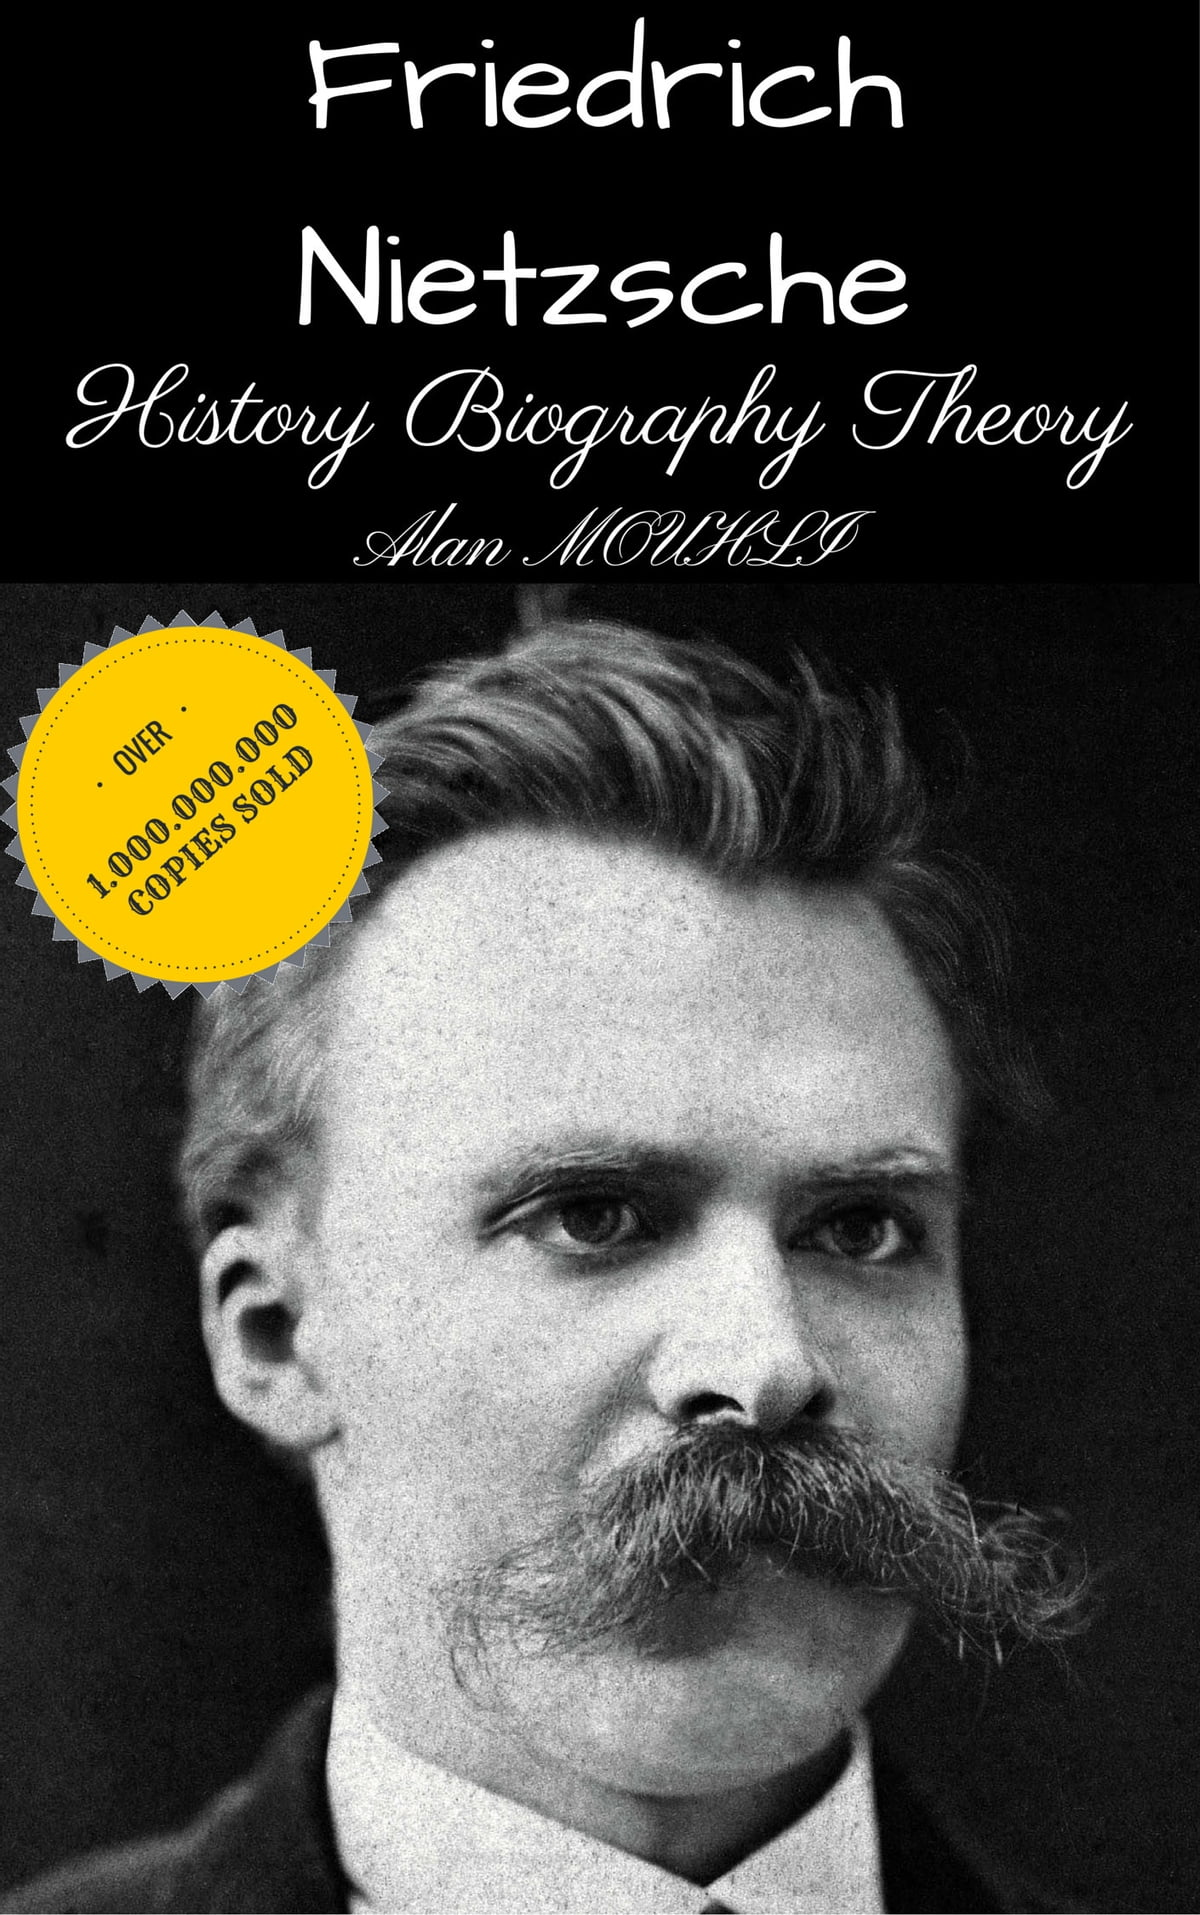 a biography of friedrich wilhelm nietzsche This entry about friedrich wilhelm nietzsche has been published under the terms of the creative commons attribution 30 (cc by 30) licence, which permits unrestricted use and reproduction (2017, 04) friedrich wilhelm nietzsche biographylawinorg retrieved 08, 2018, from https.